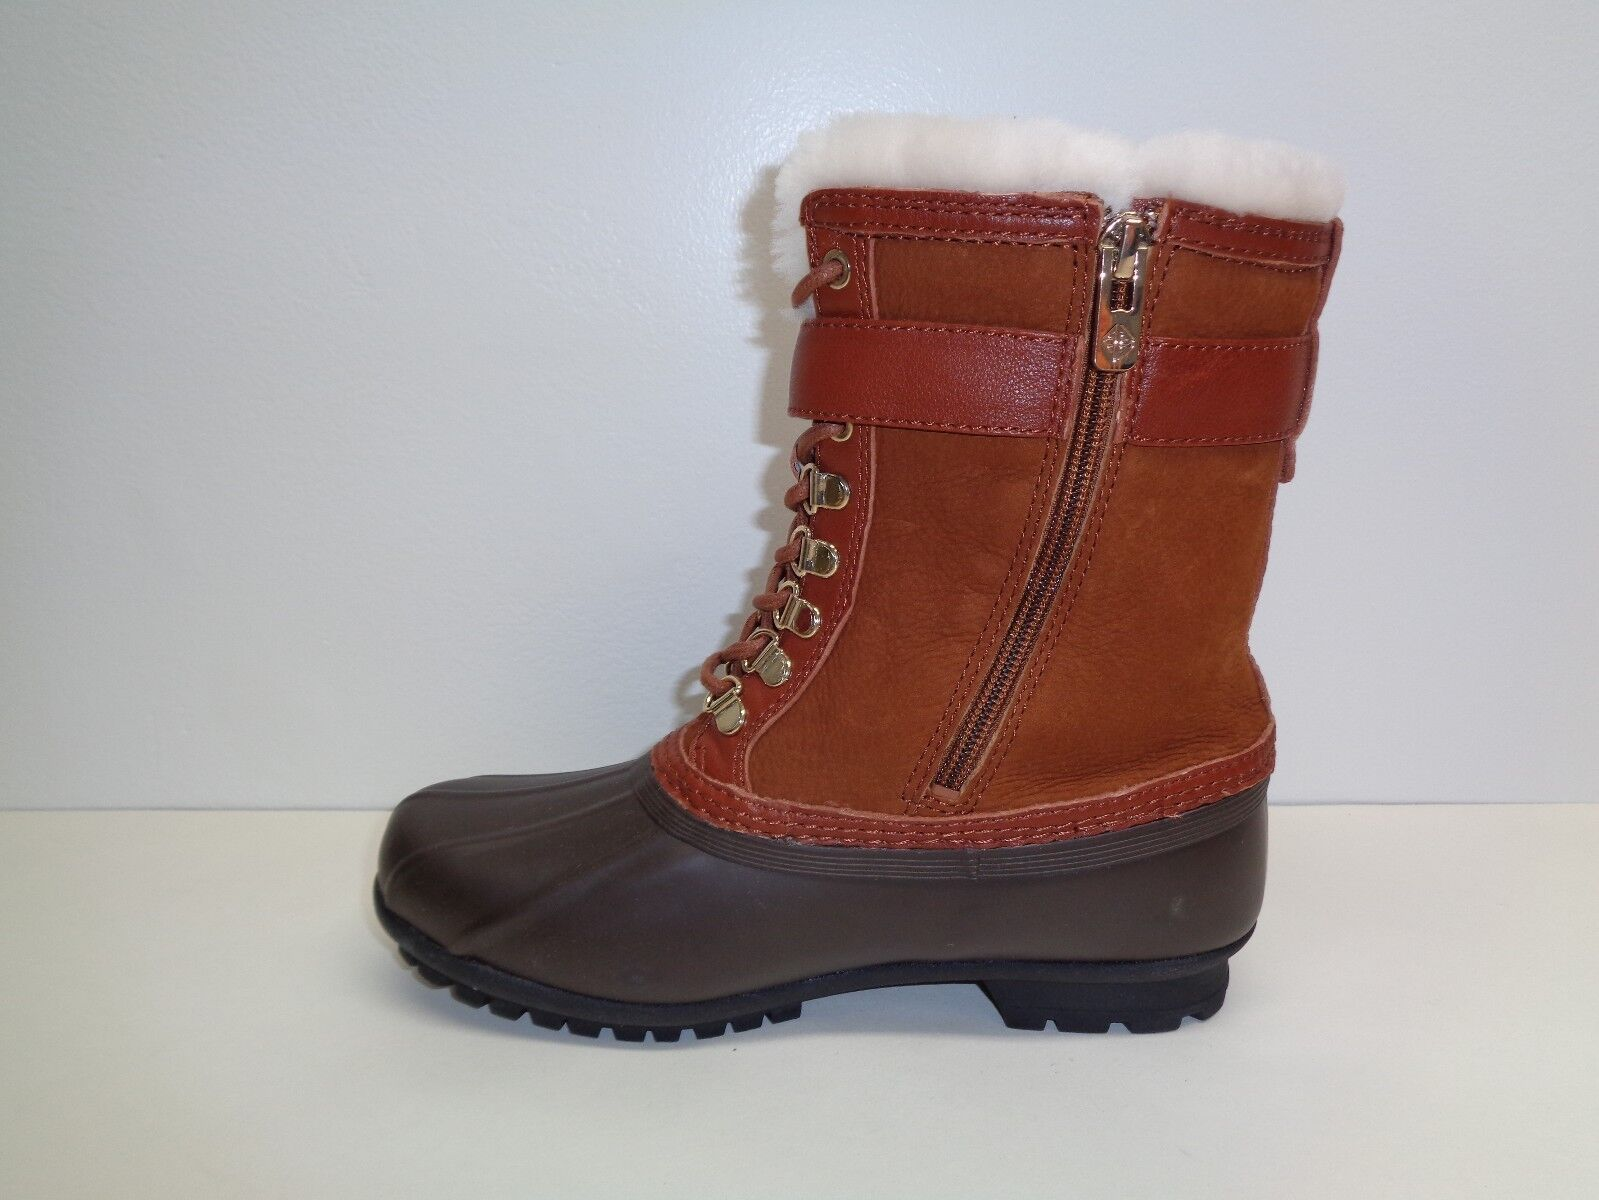 Antonio Melani Size 7 M LAWSYS Brown Brown Brown Leather Fur Duck Boots New Womens shoes 3d8d6a